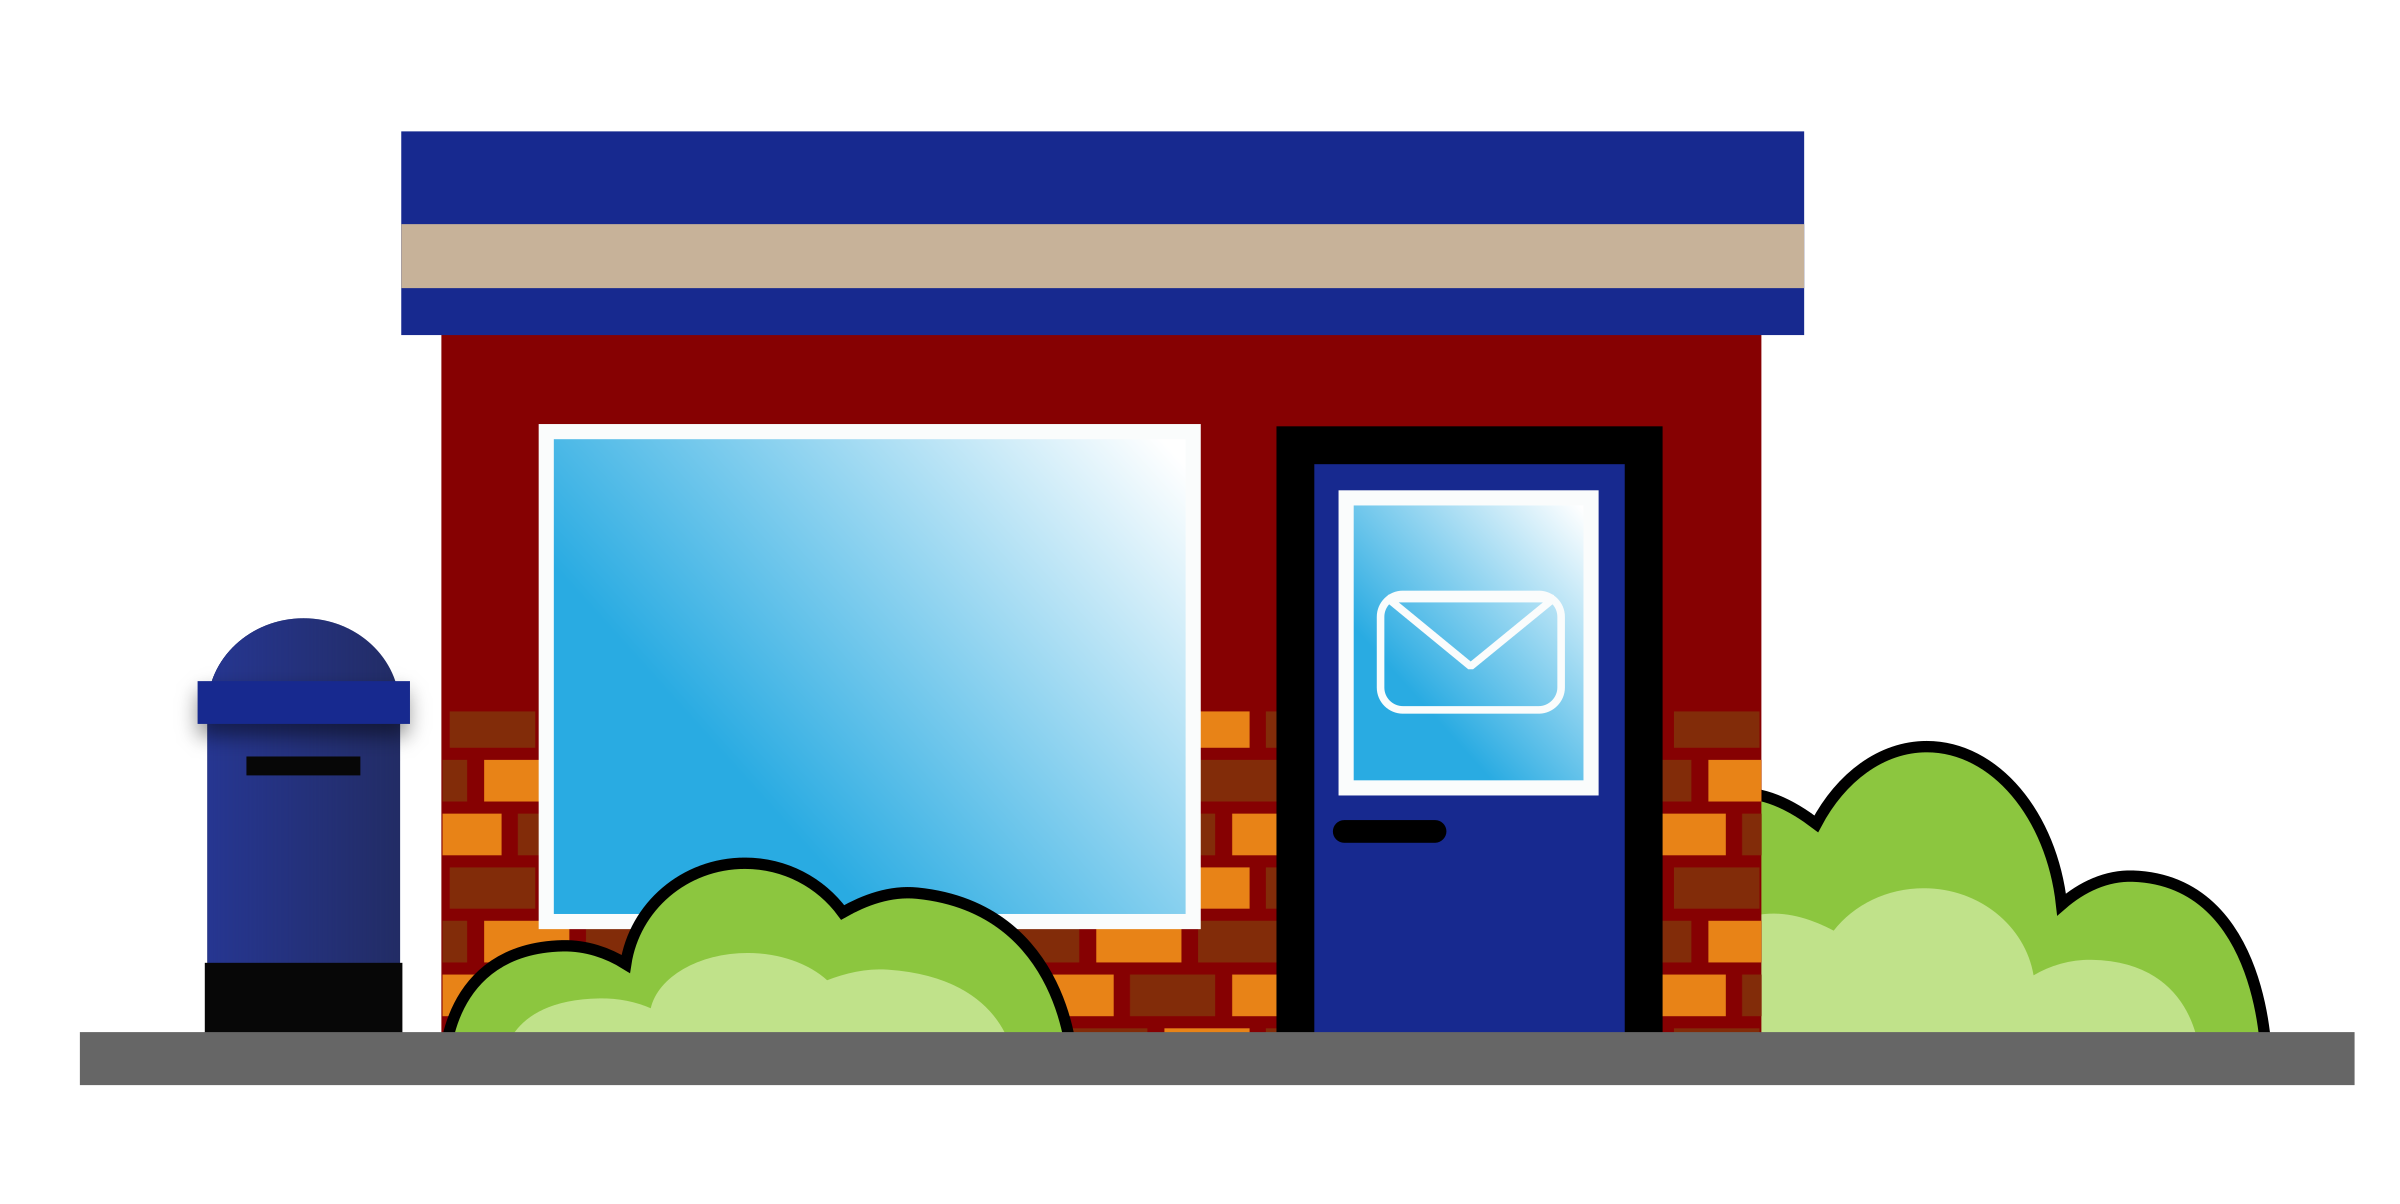 Usa big image png. Mail clipart post office